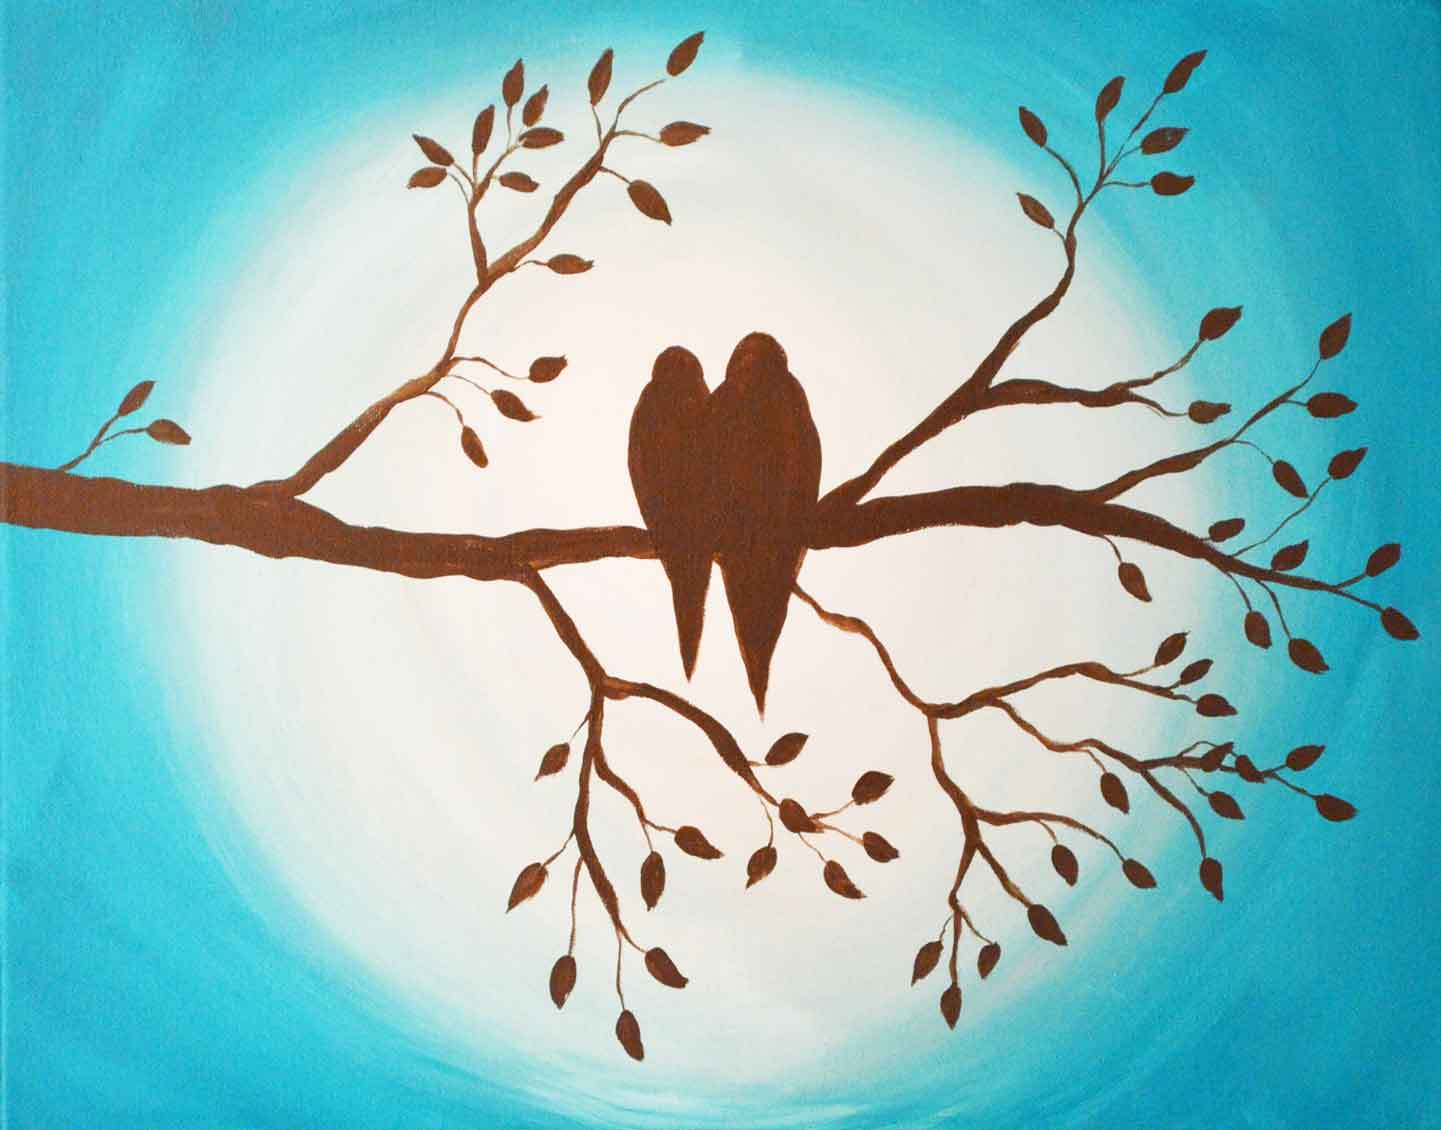 Birds On Branch Silhouette On Storenvy